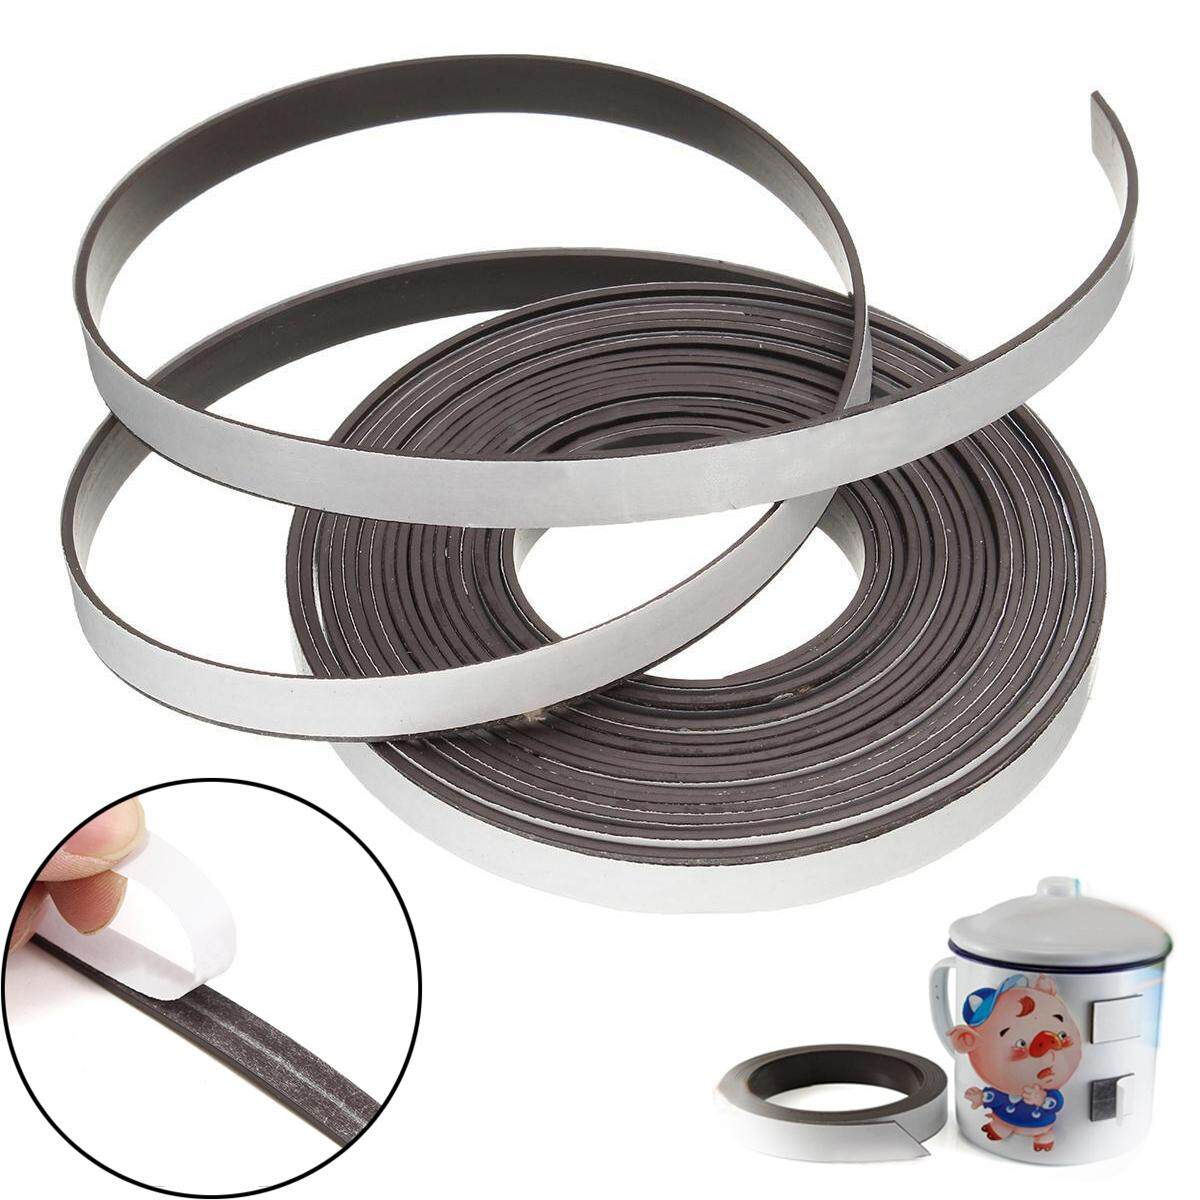 idealhere New 1M/5M Rubber Self Adhesive Magnetic Stripe Flexible Magnet DIY Strip Tape